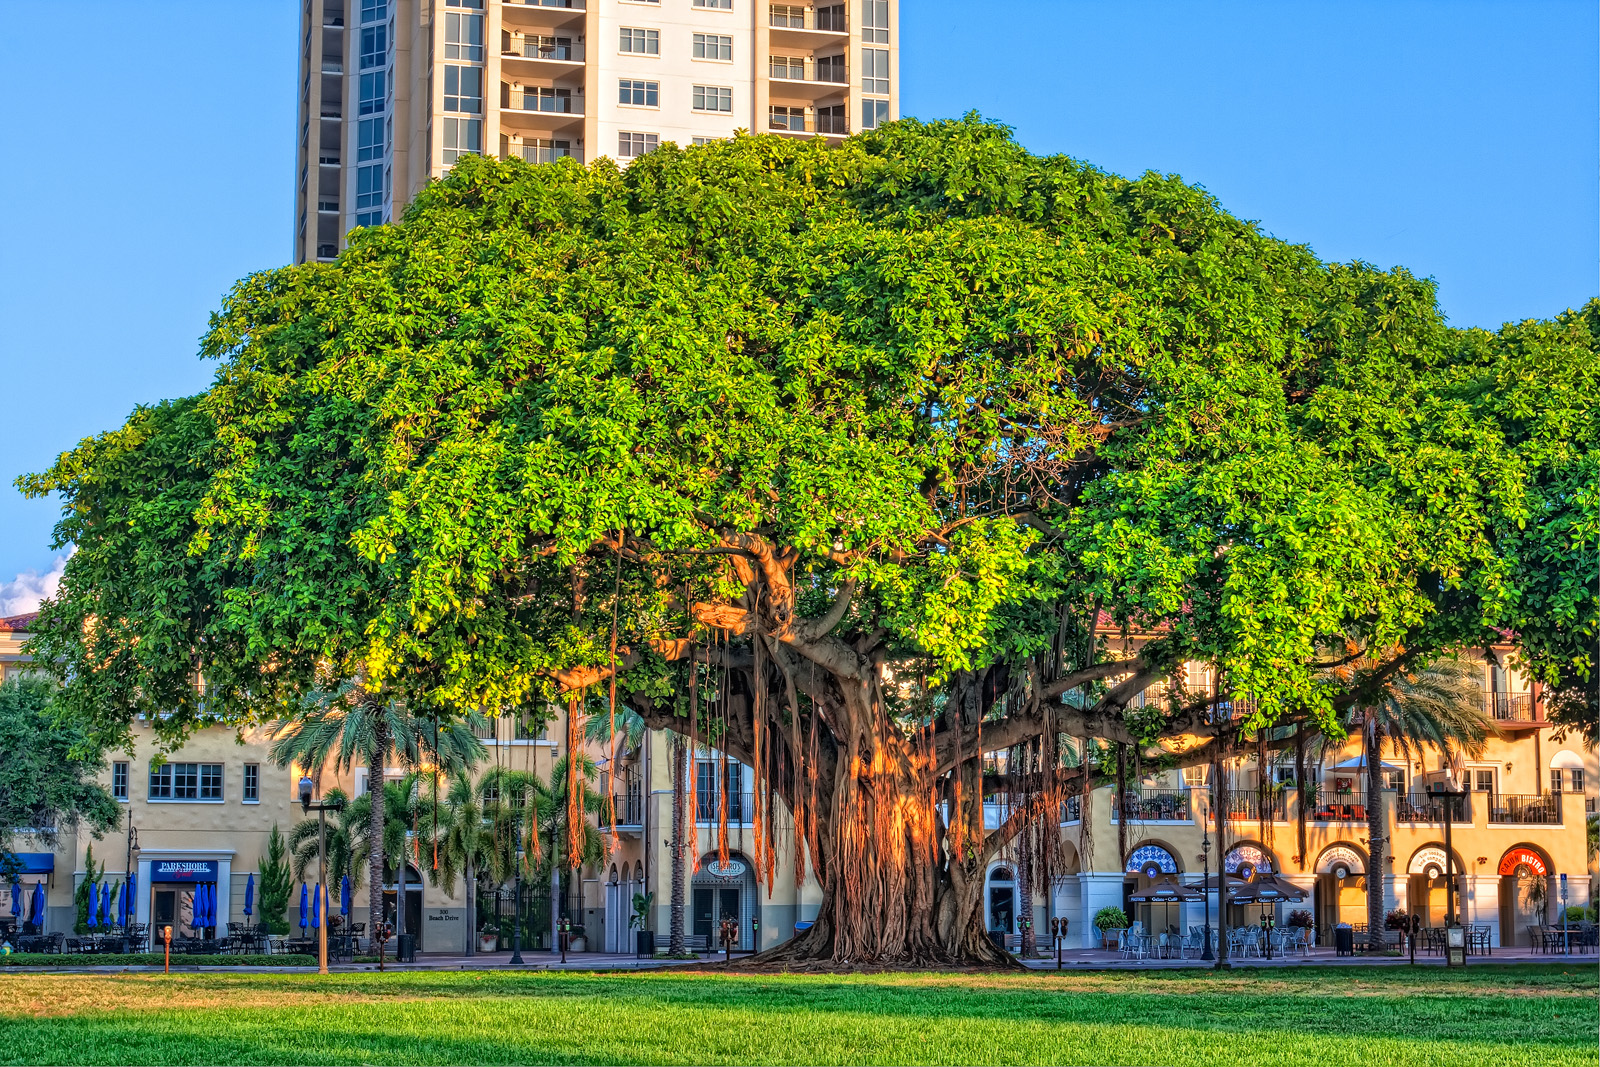 Banyan Tree after Sunrise